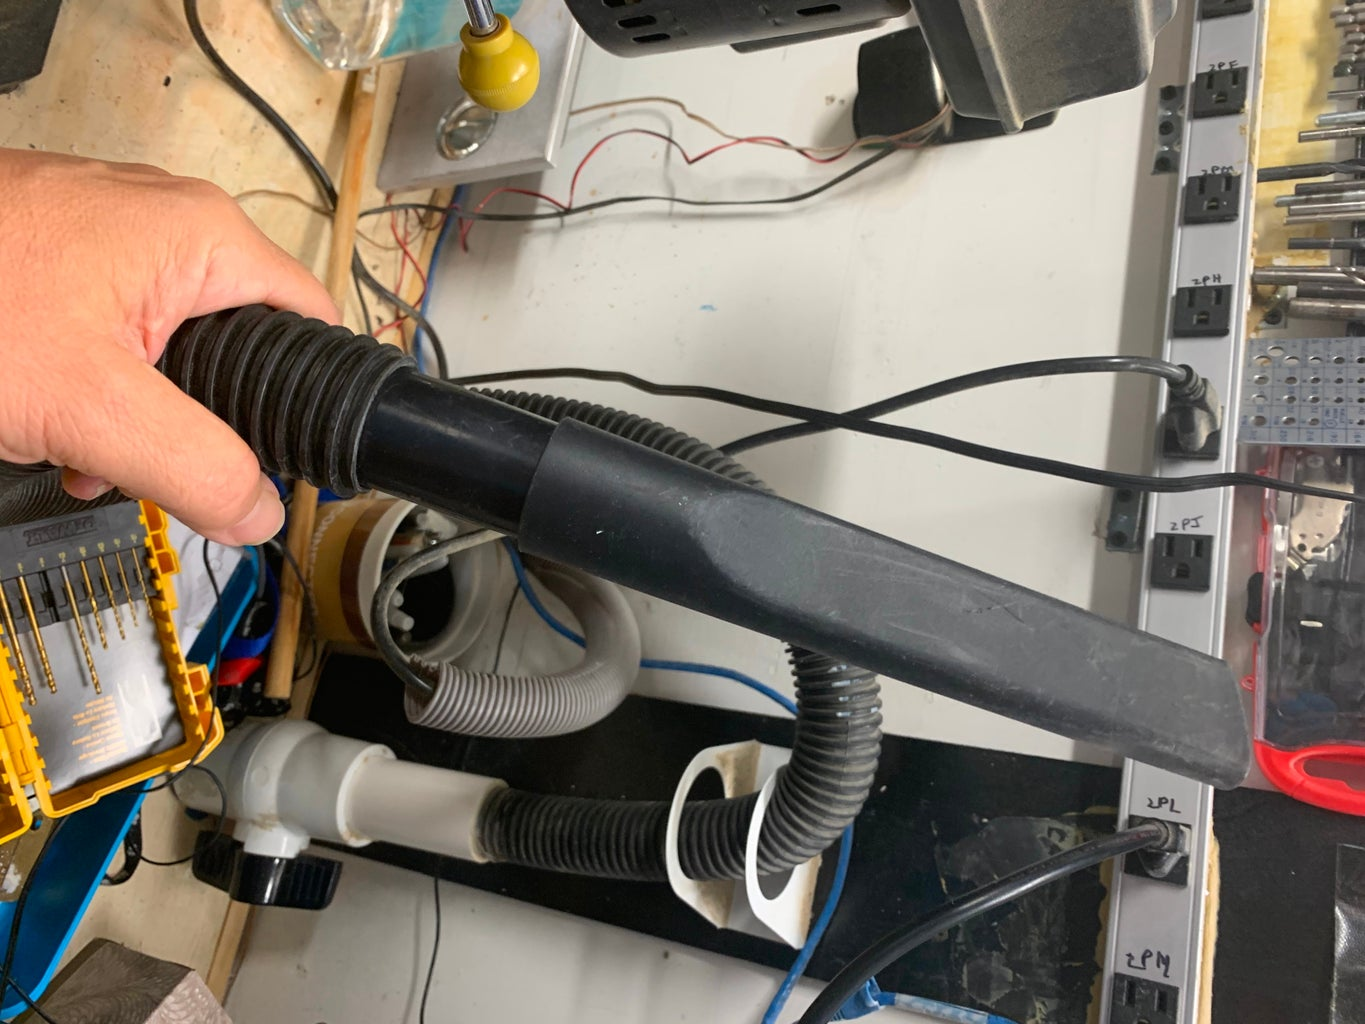 Hacking the Vac